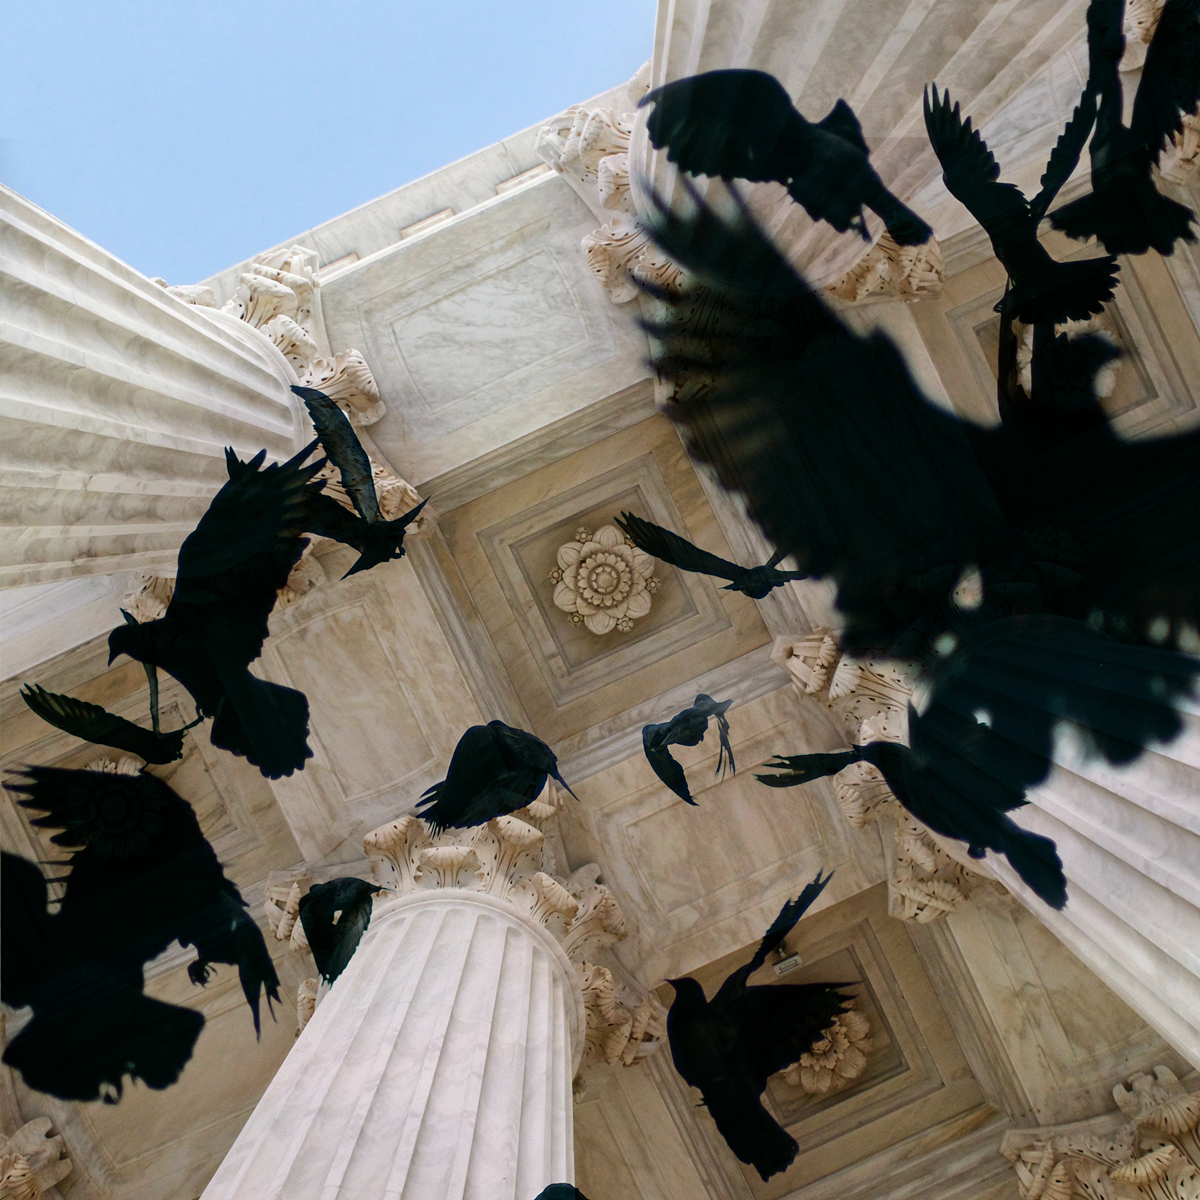 Birds, columns, Supreme Court columns